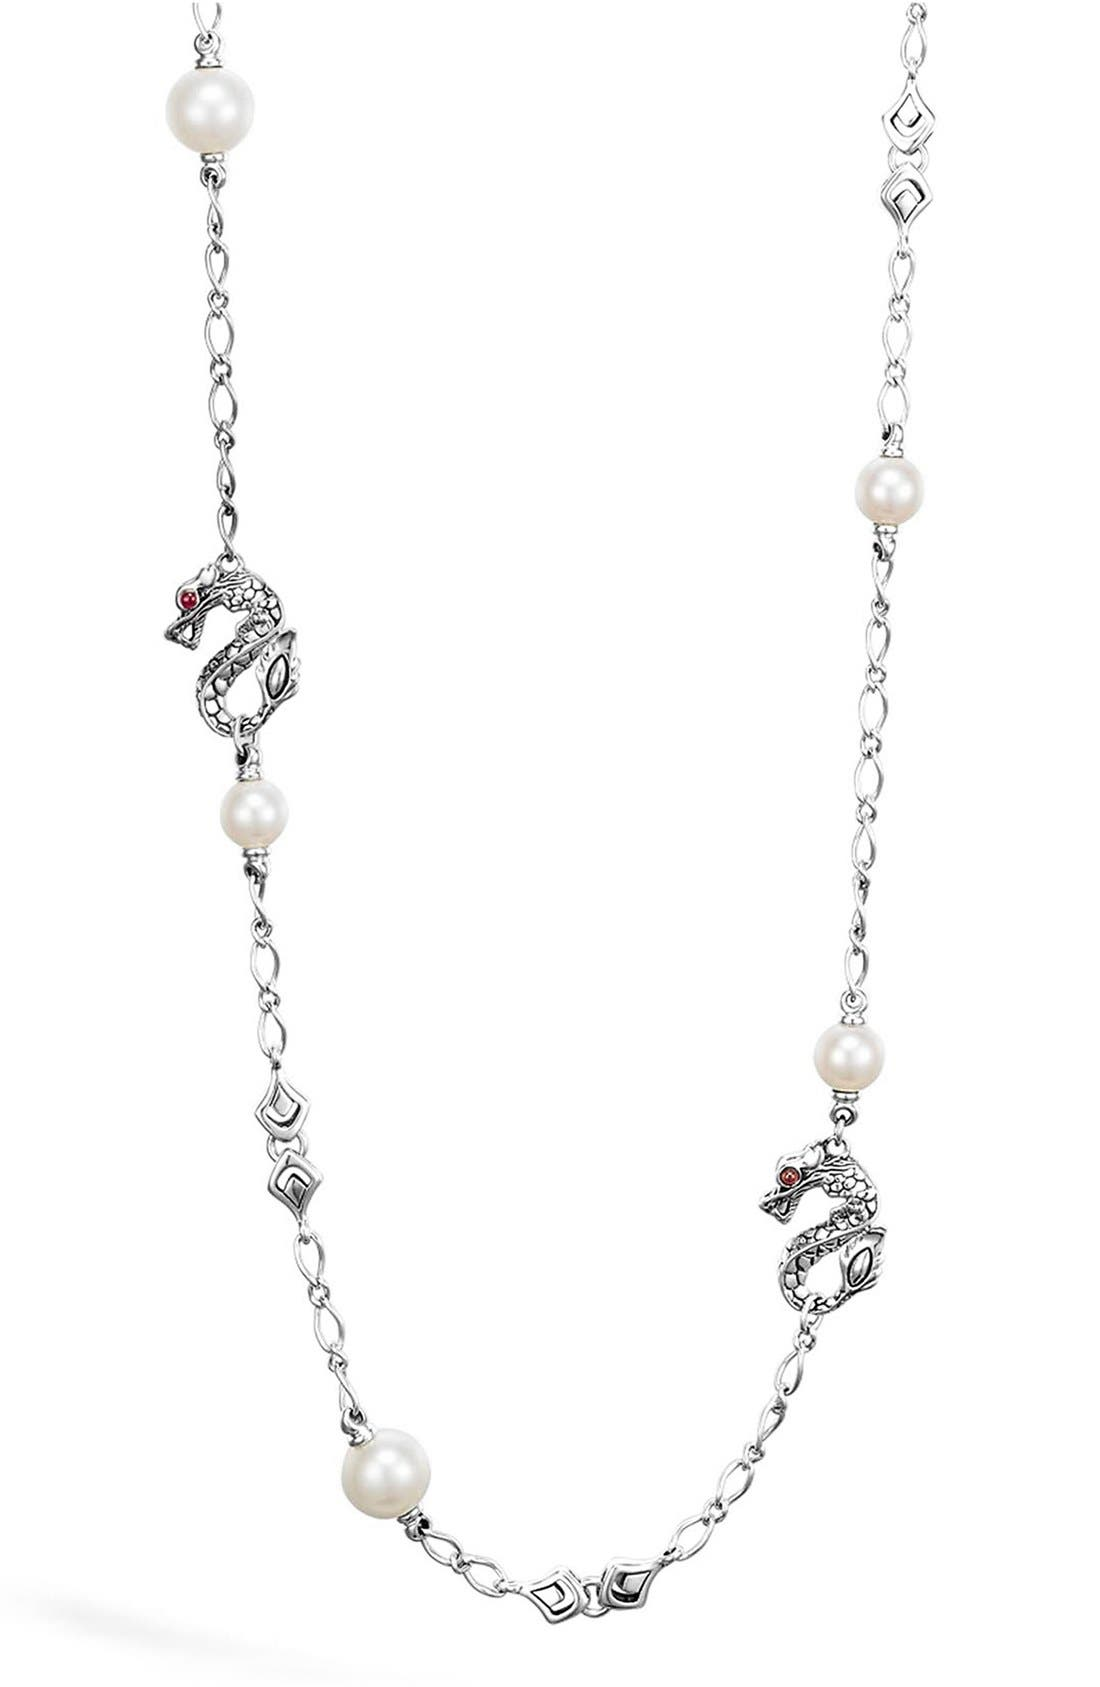 JOHN HARDY Naga Dragon & Pearl Station Necklace